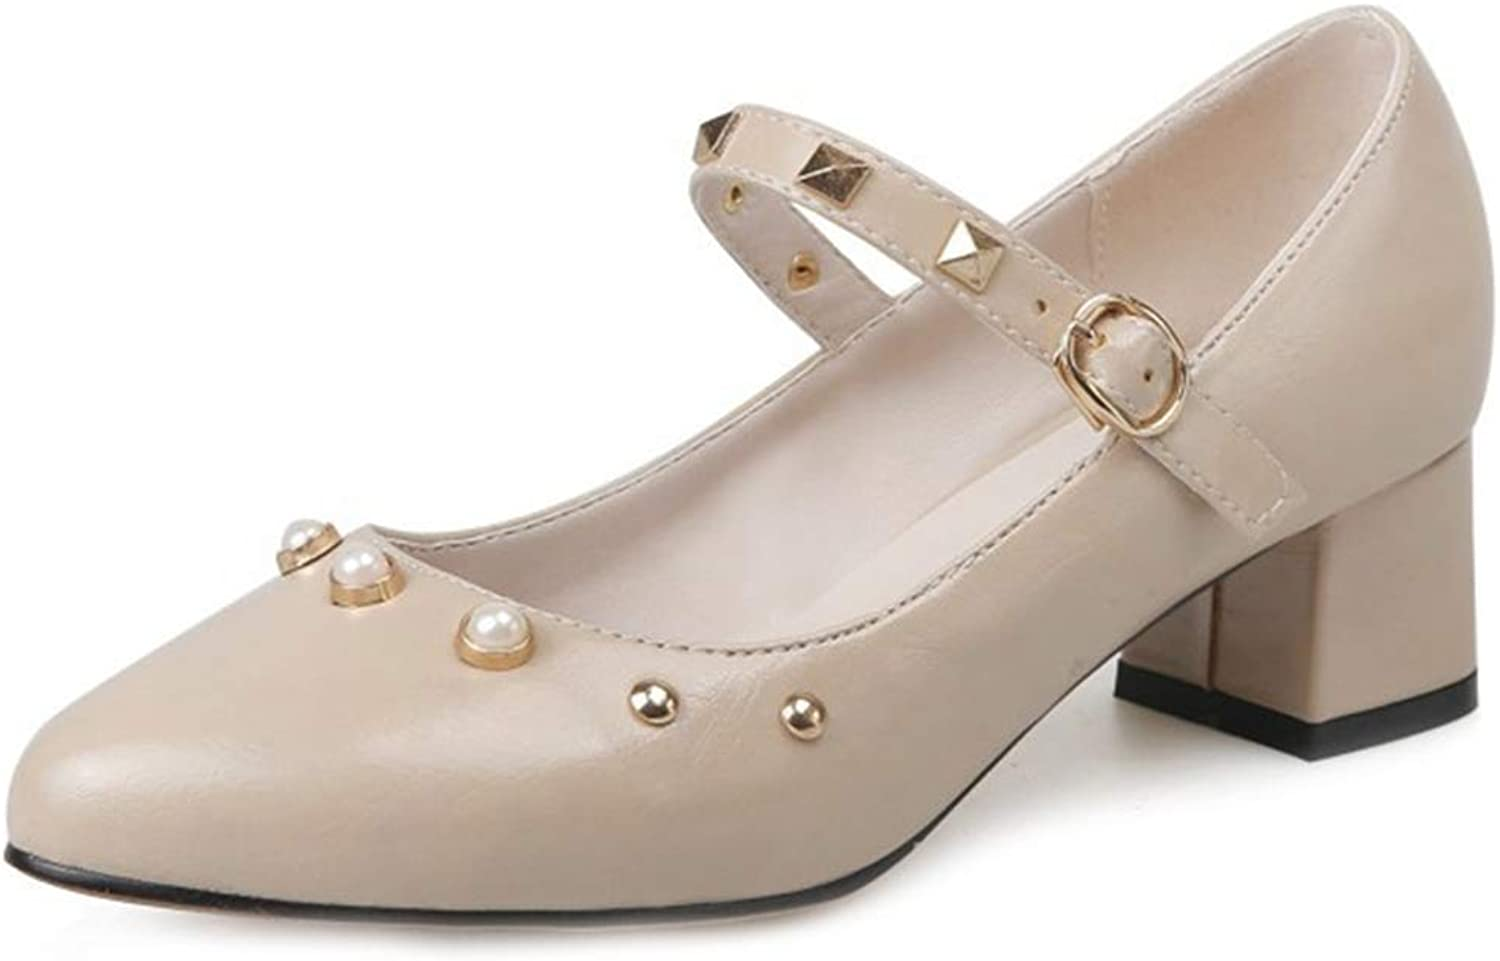 GIY Women's Retro Mary Jane Oxford shoes Wingtip Buckle Strap Mid Heel Studded Classic Dress Oxfords